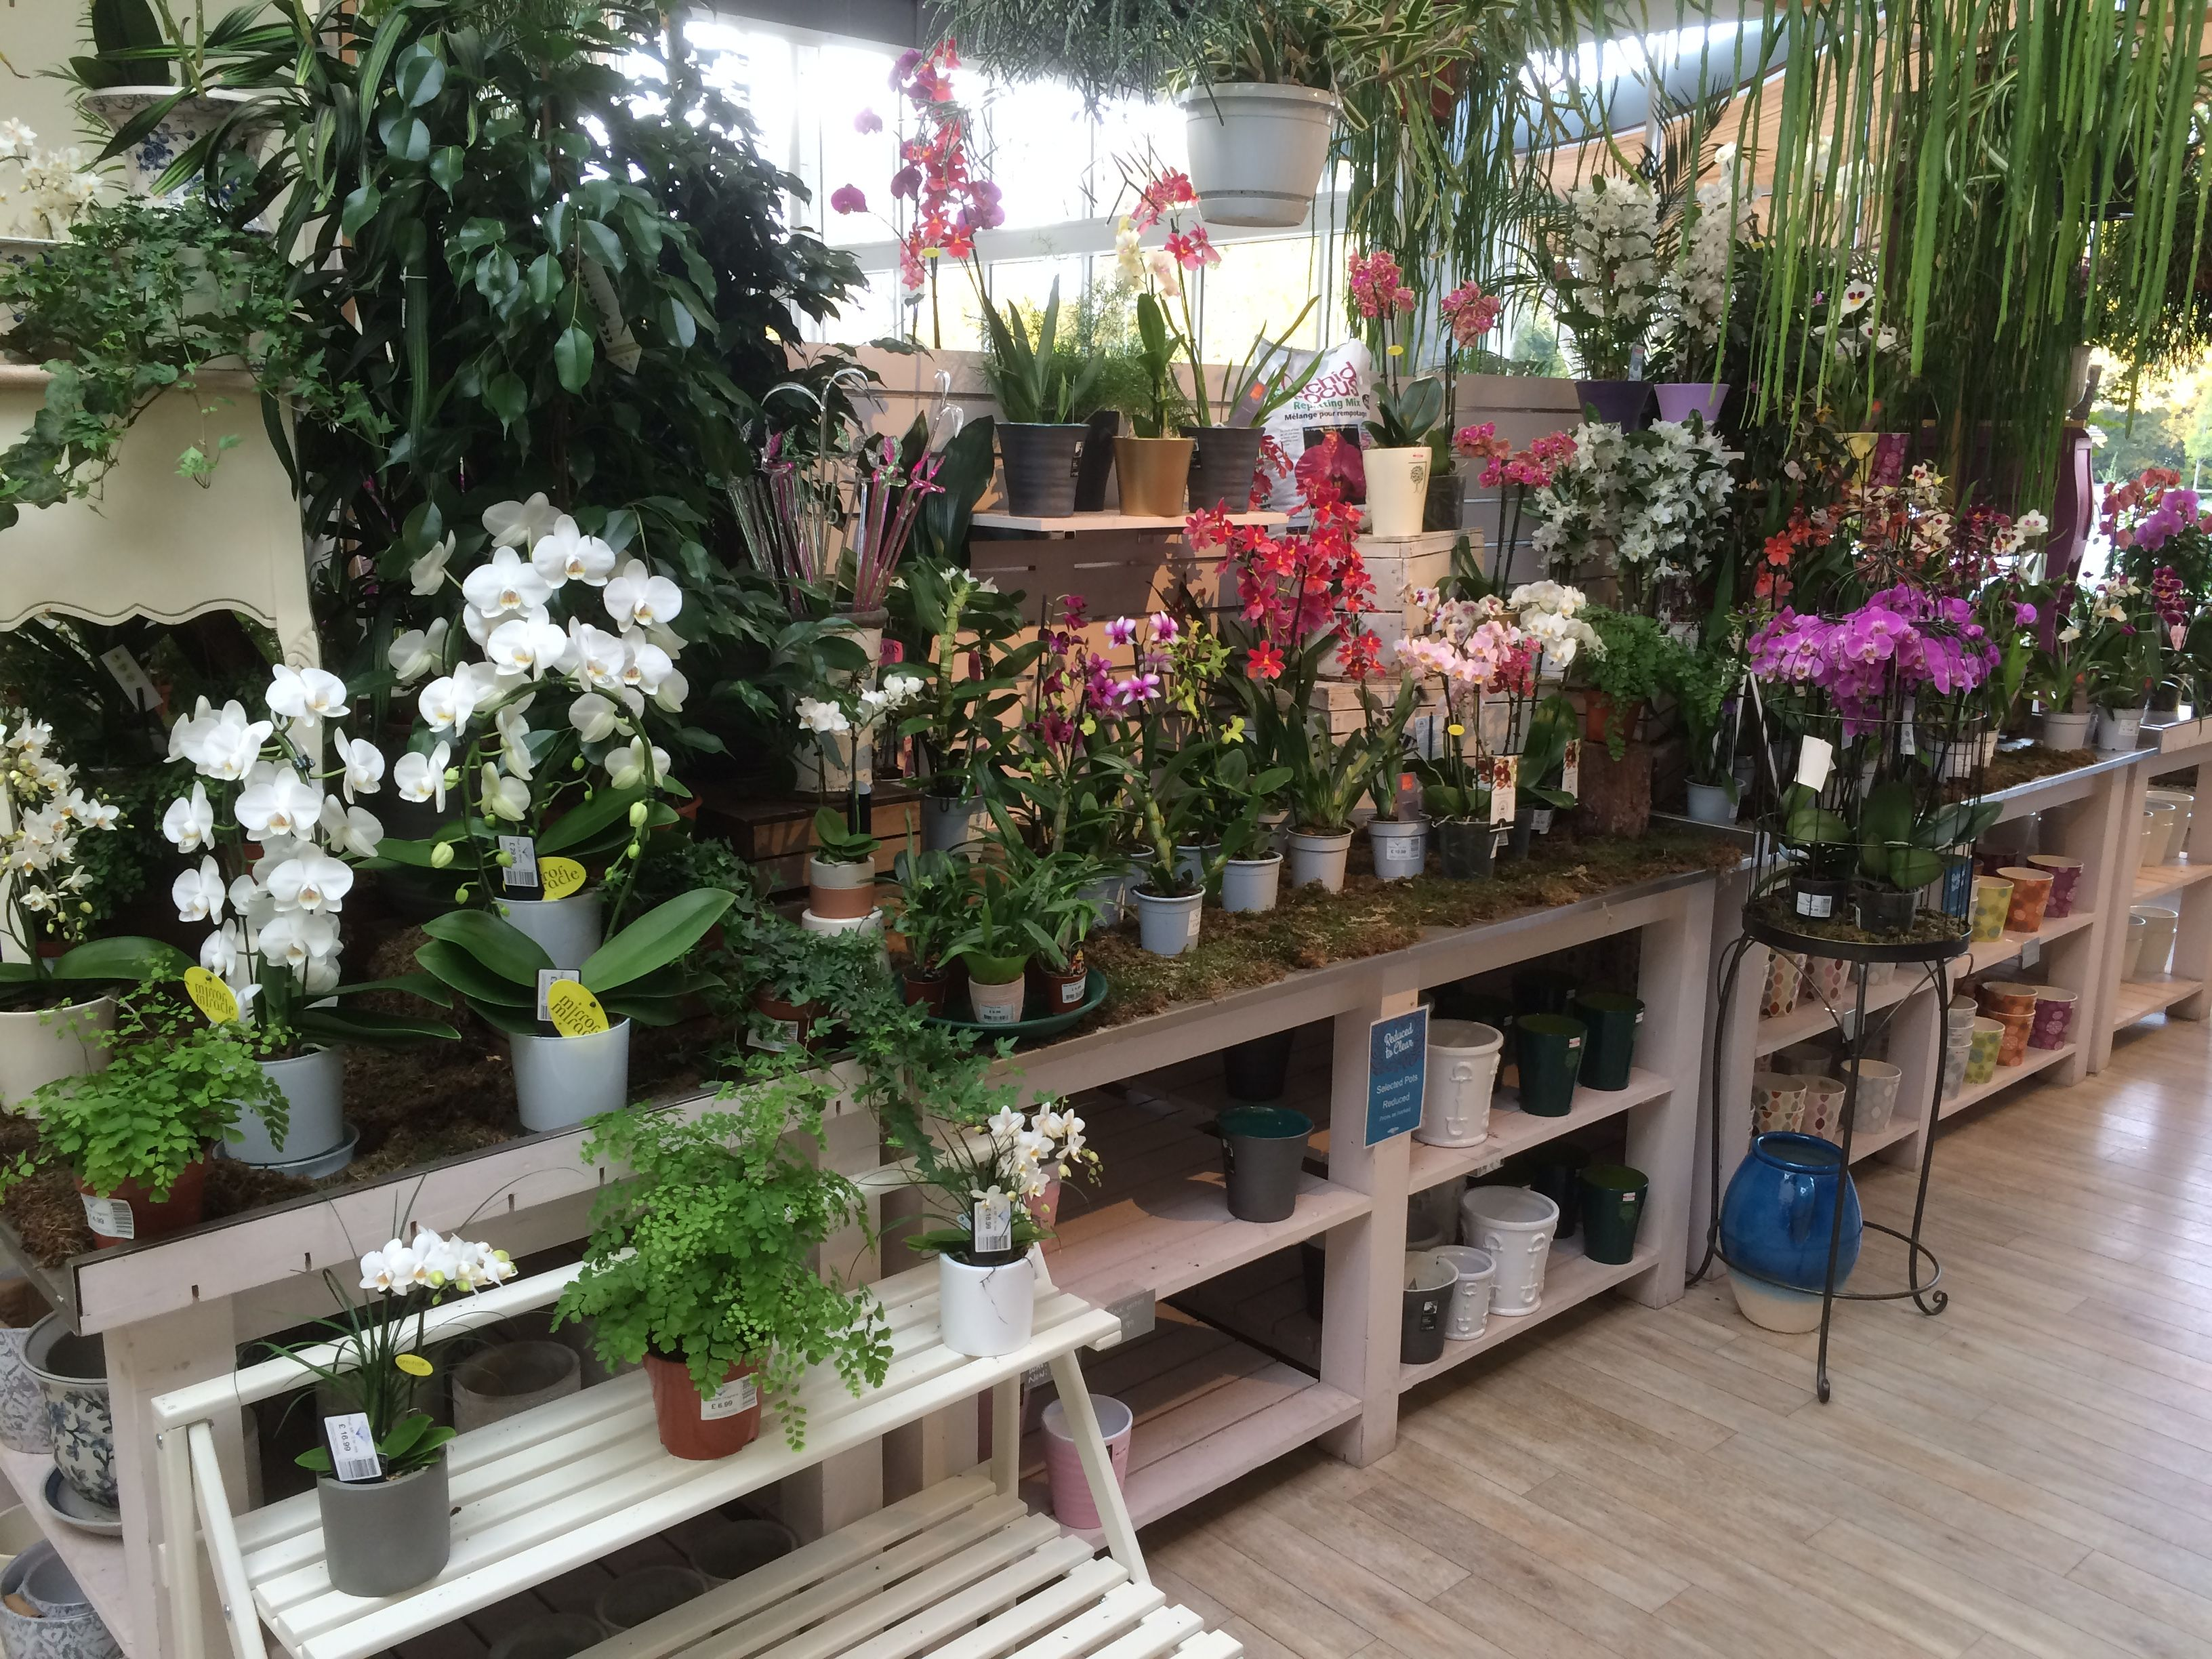 House Plant Display At Redfields Garden Centre Part Of The Blue Diamond Group November 2016 Garden Center Garden Center Displays House Plants